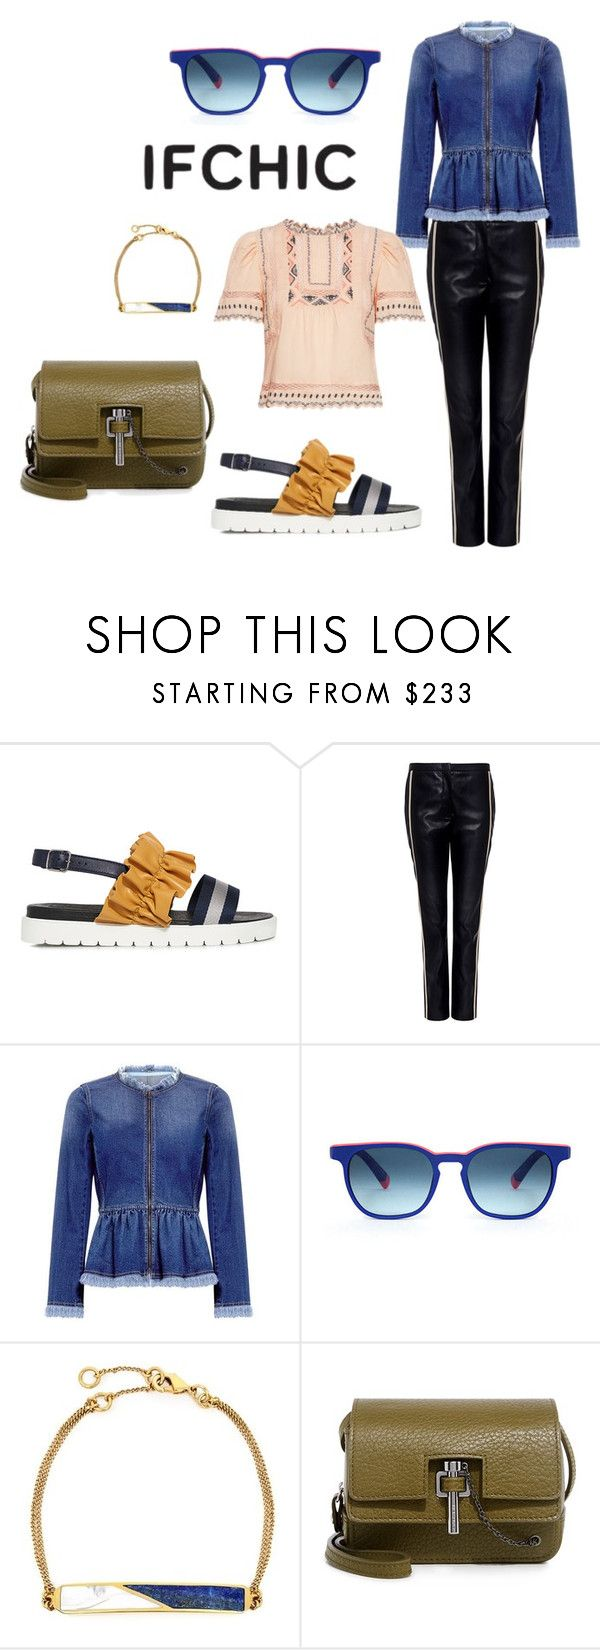 """""""SUMMER SALE at ifchic.com"""" by sahelirima ❤ liked on Polyvore featuring Mother of Pearl, N°21, Marissa Webb, Etnia Barcelona, Edge of Ember, Carven, Rebecca Taylor, summersale and ifchic"""